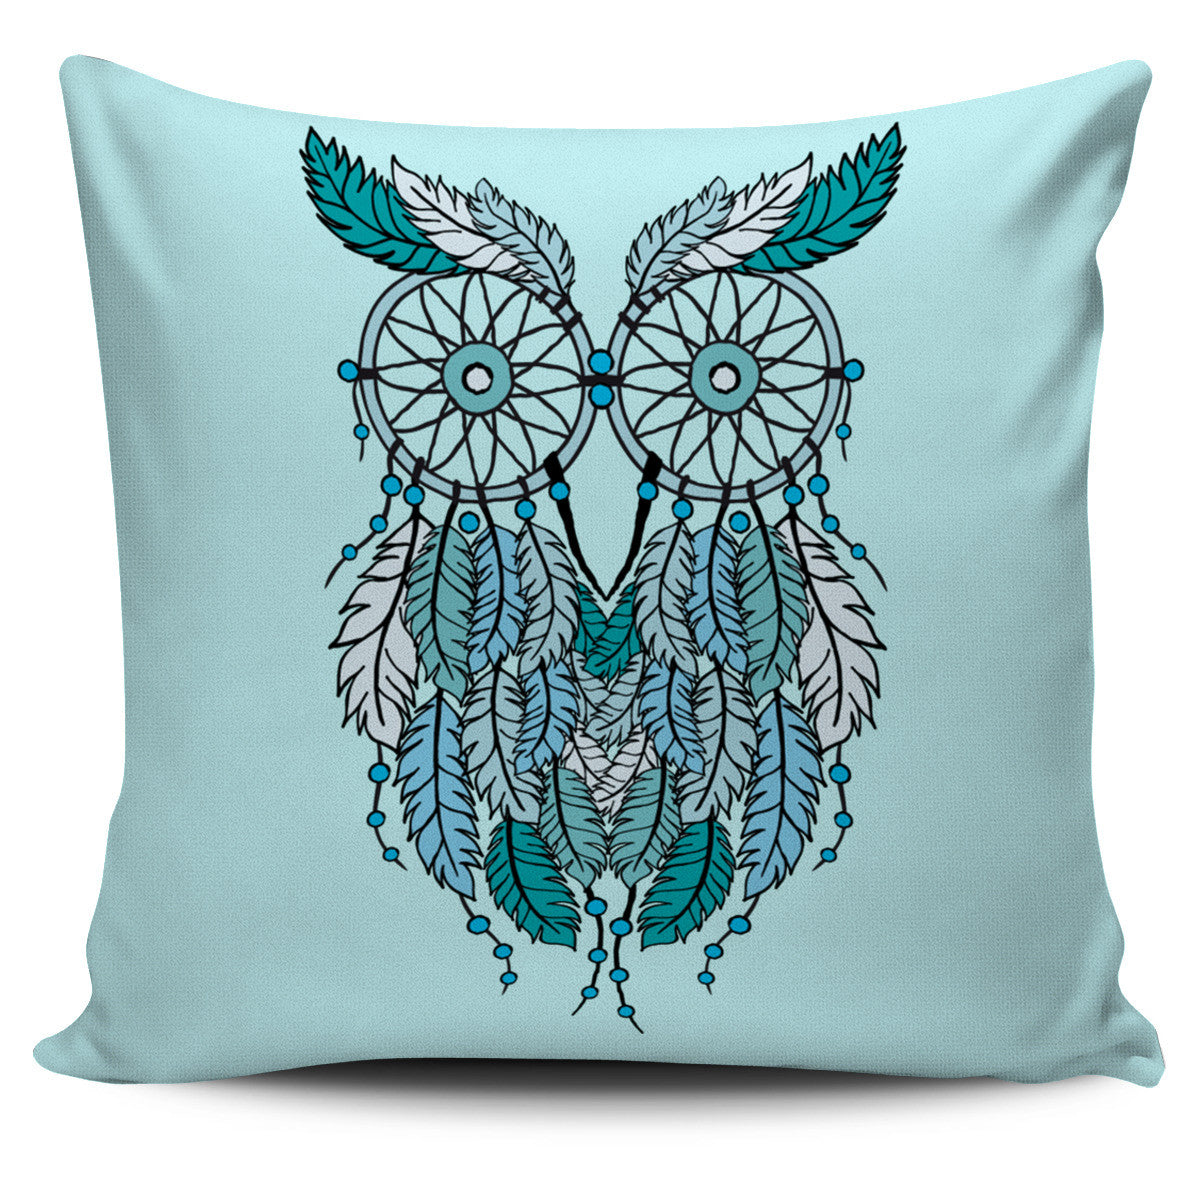 DREAM CATCHER OWL BLUE PILLOW COVERS